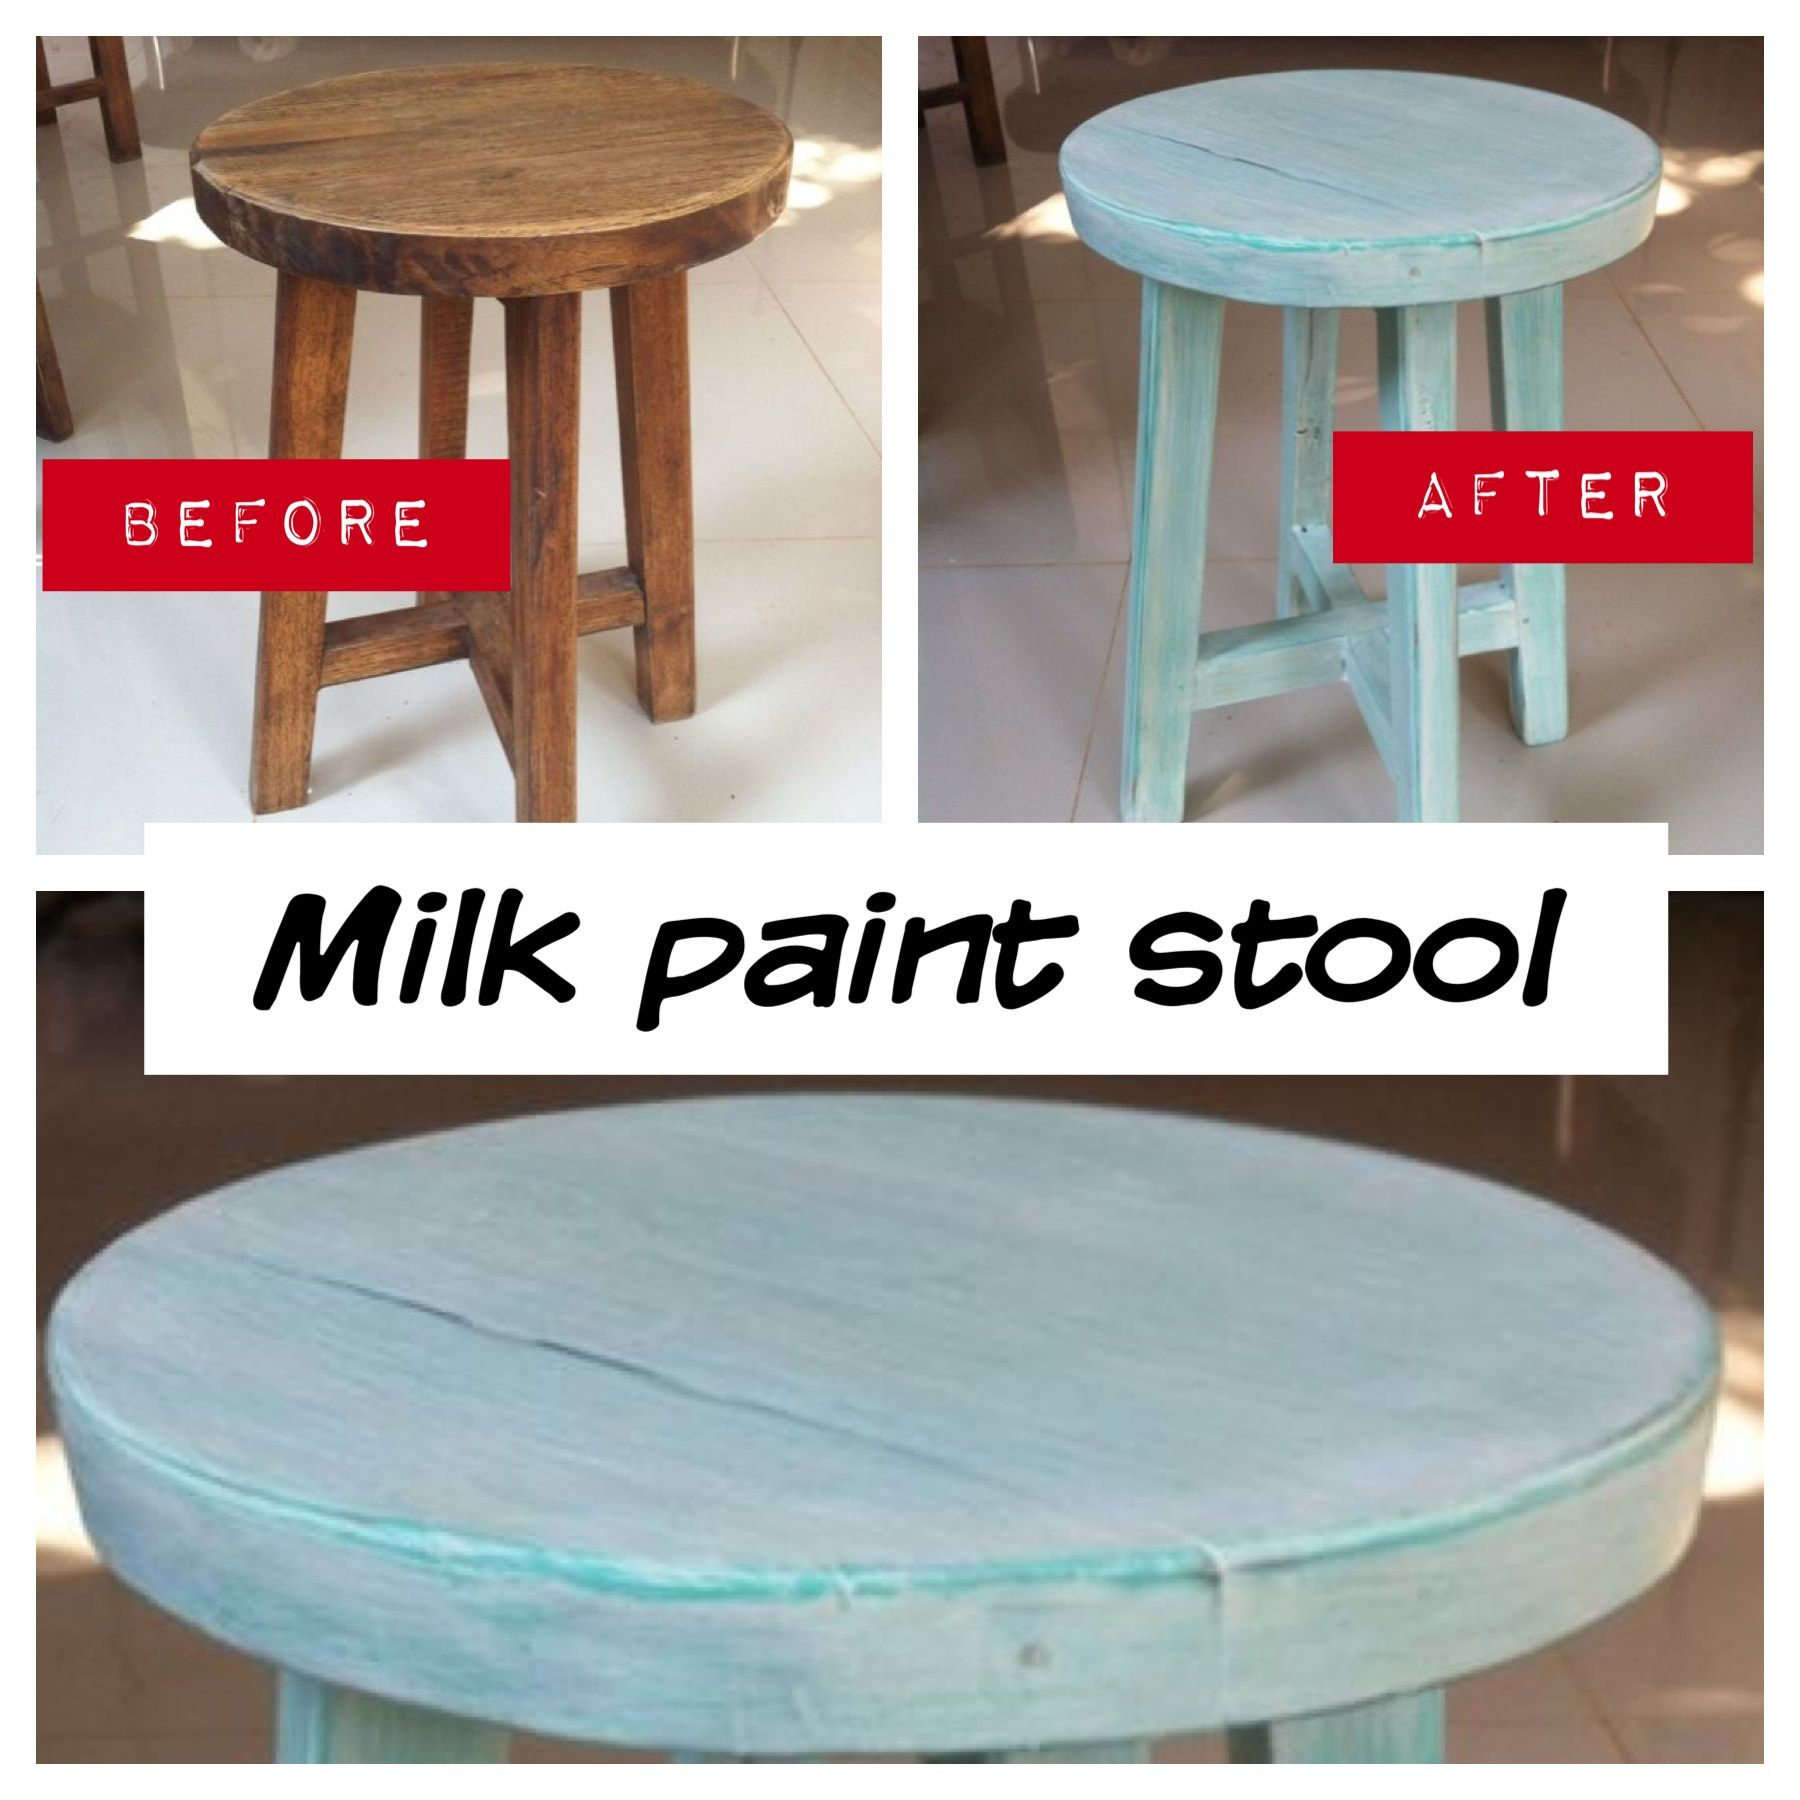 Milk paint stool | My project done | Pinterest | Painted stools